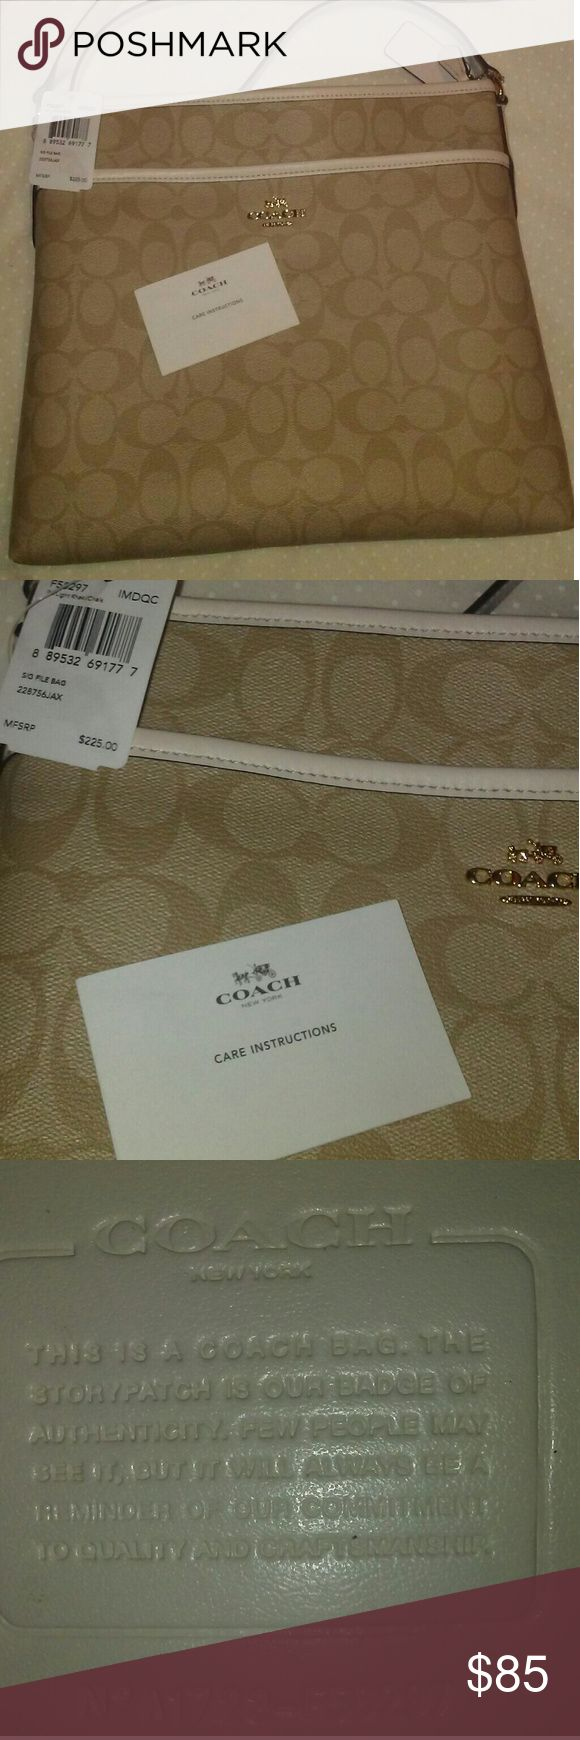 """Coach File Crossbody bag NWT file crossbody Beige/white Authentic....has a couple blue smudges on the shoulder strap from my little girl-she decided to use it to,play dress up--but other than that there are no marks, they aw barely noticeable (see pic) Has a large pocket on the front, the inside has a large zipper picket on one side ad 2 smaller pockets on the other side Adjustable shoulder s rap Roomy but not too big Still has price tag and """"care instructions"""" & freshness packet or still…"""